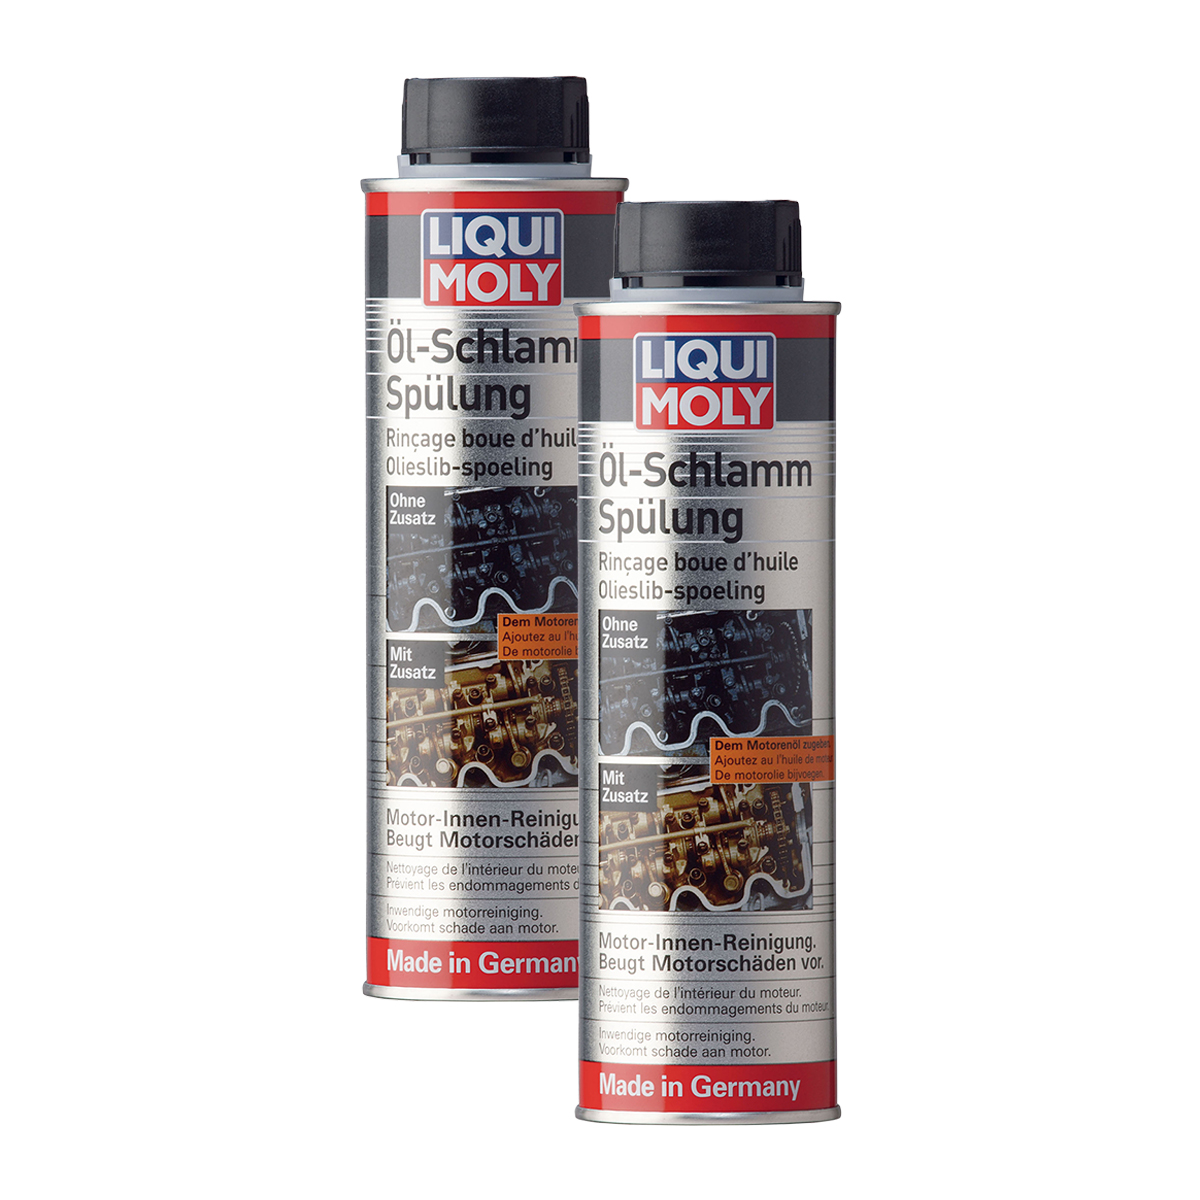 2x liqui moly 5200 l schlamm sp lung motorreiniger. Black Bedroom Furniture Sets. Home Design Ideas